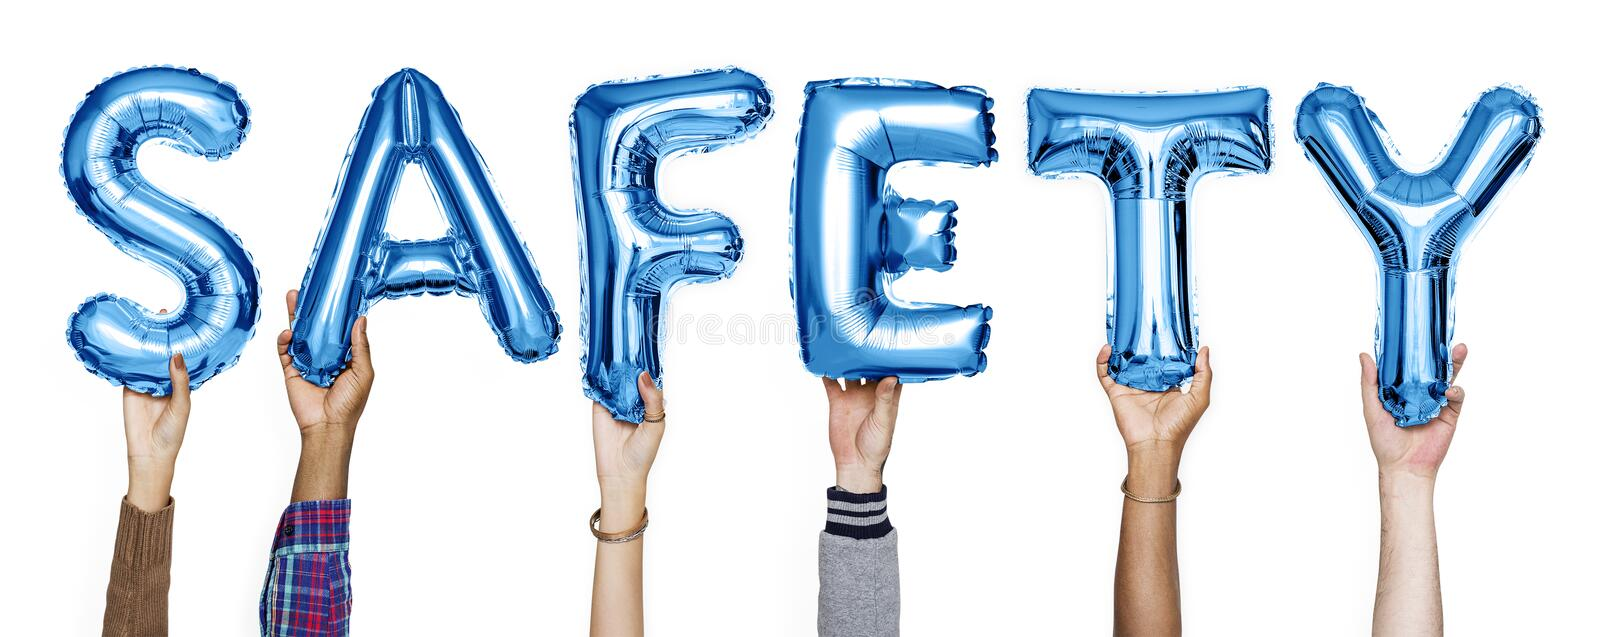 Blue alphabet balloons forming the word safety royalty free stock photography